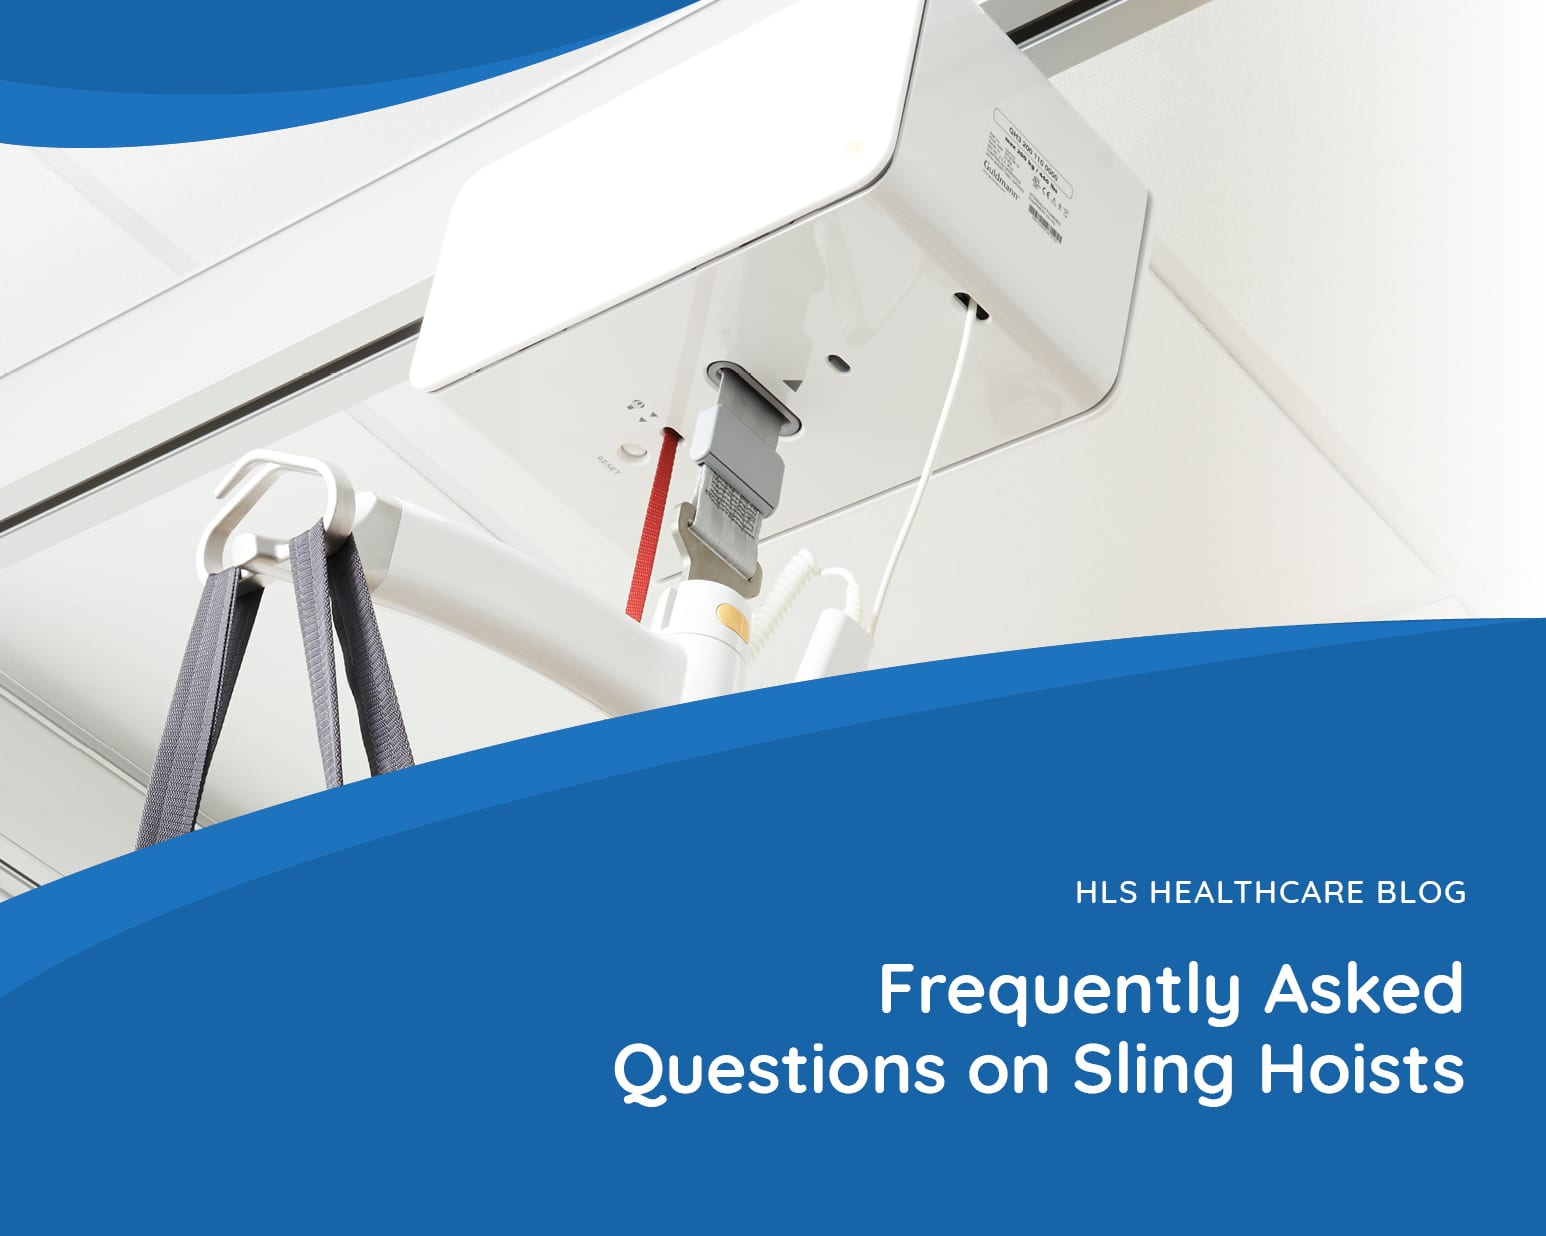 Frequently Asked Questions on Sling Hoists answered by the Expert Disability Equipment Suppliers – HLS Healthcare